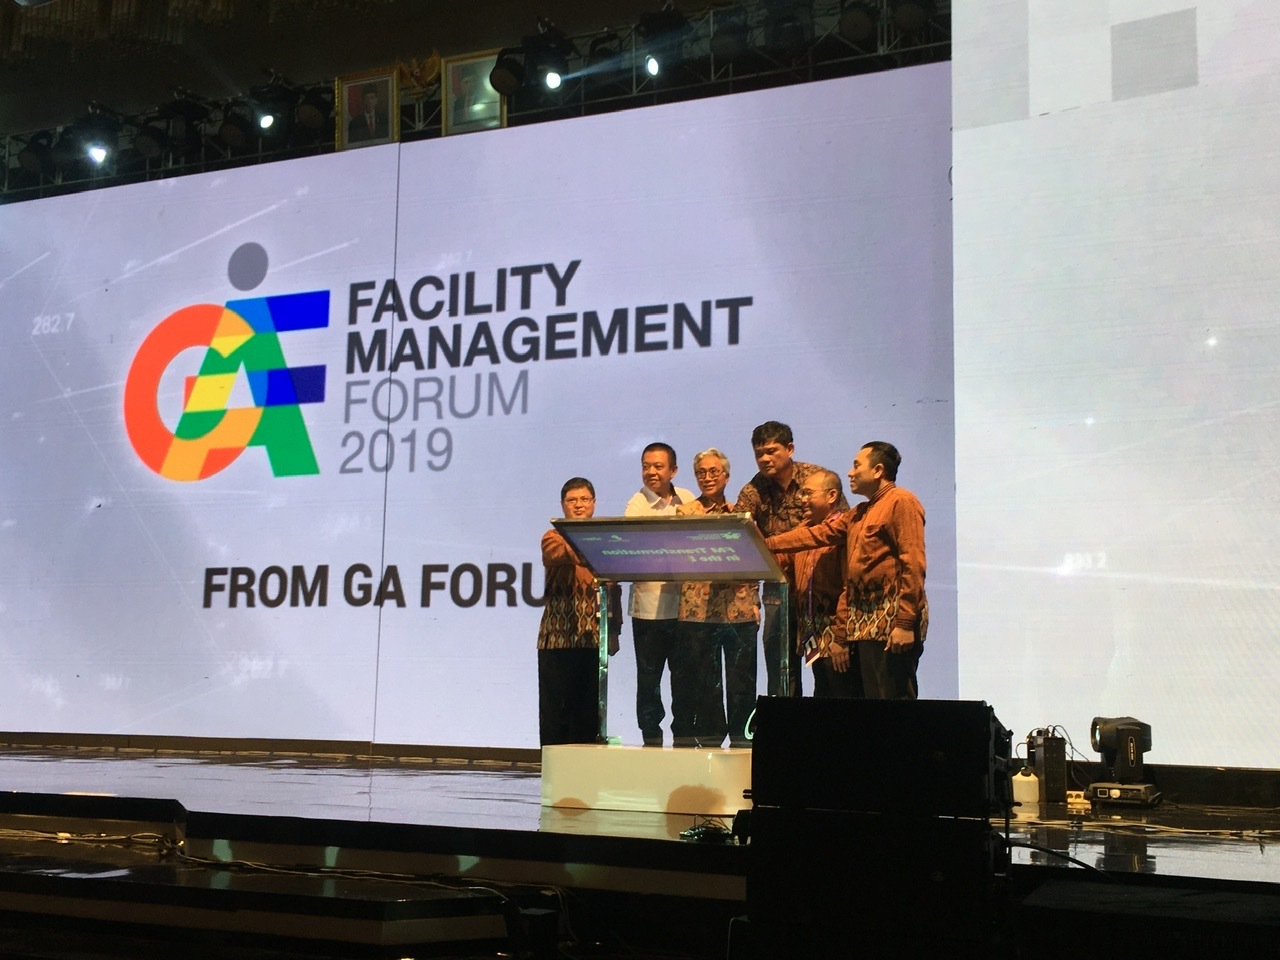 Transformasi General Affairs (GA) Forum dalam Facility Management Forum 2019